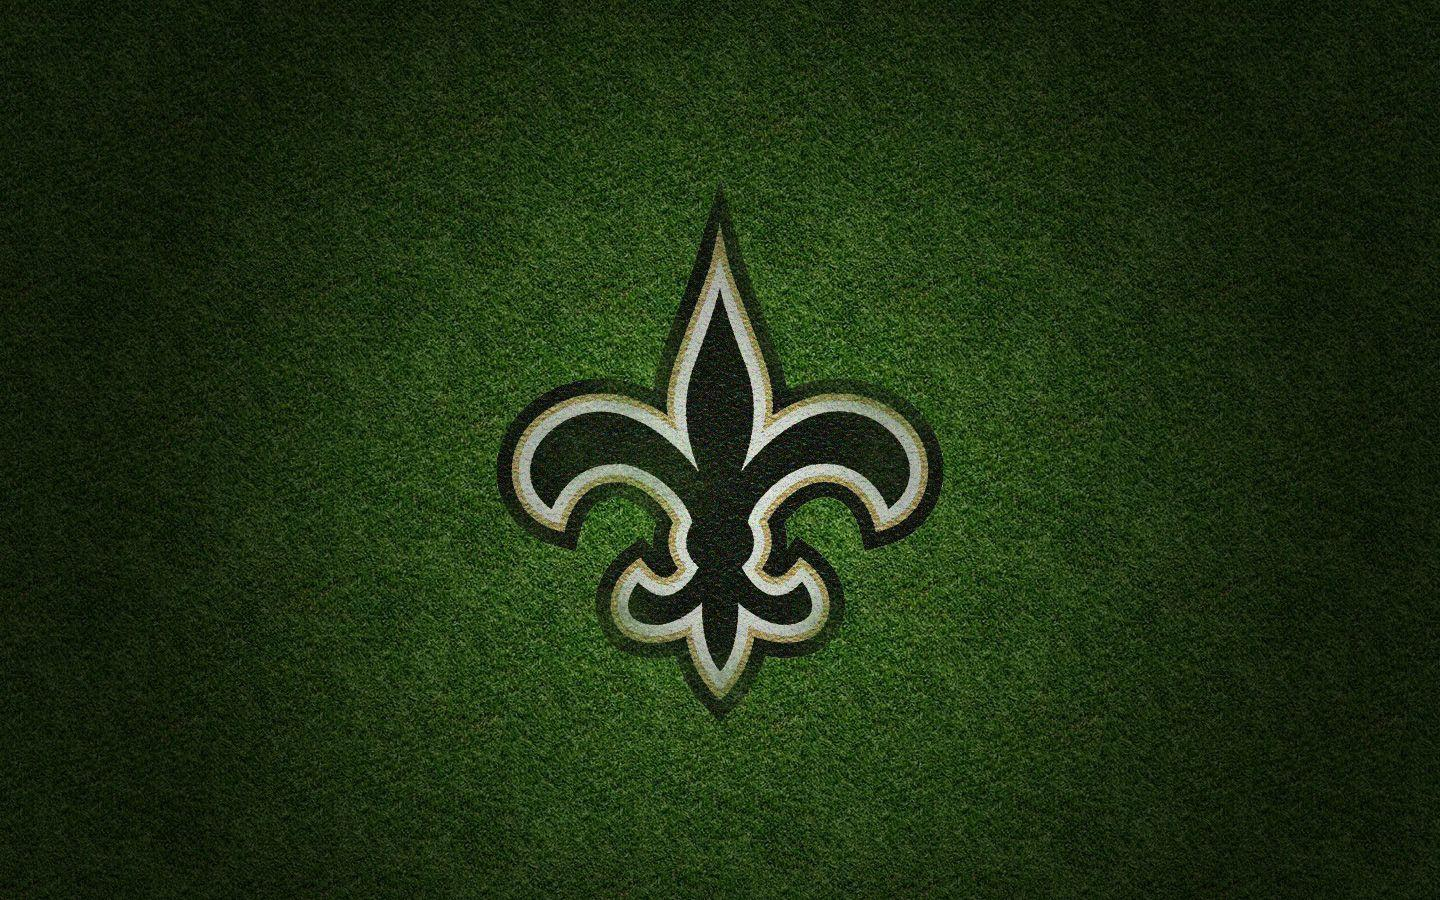 backgrounds new orleans saints logo wallpapers